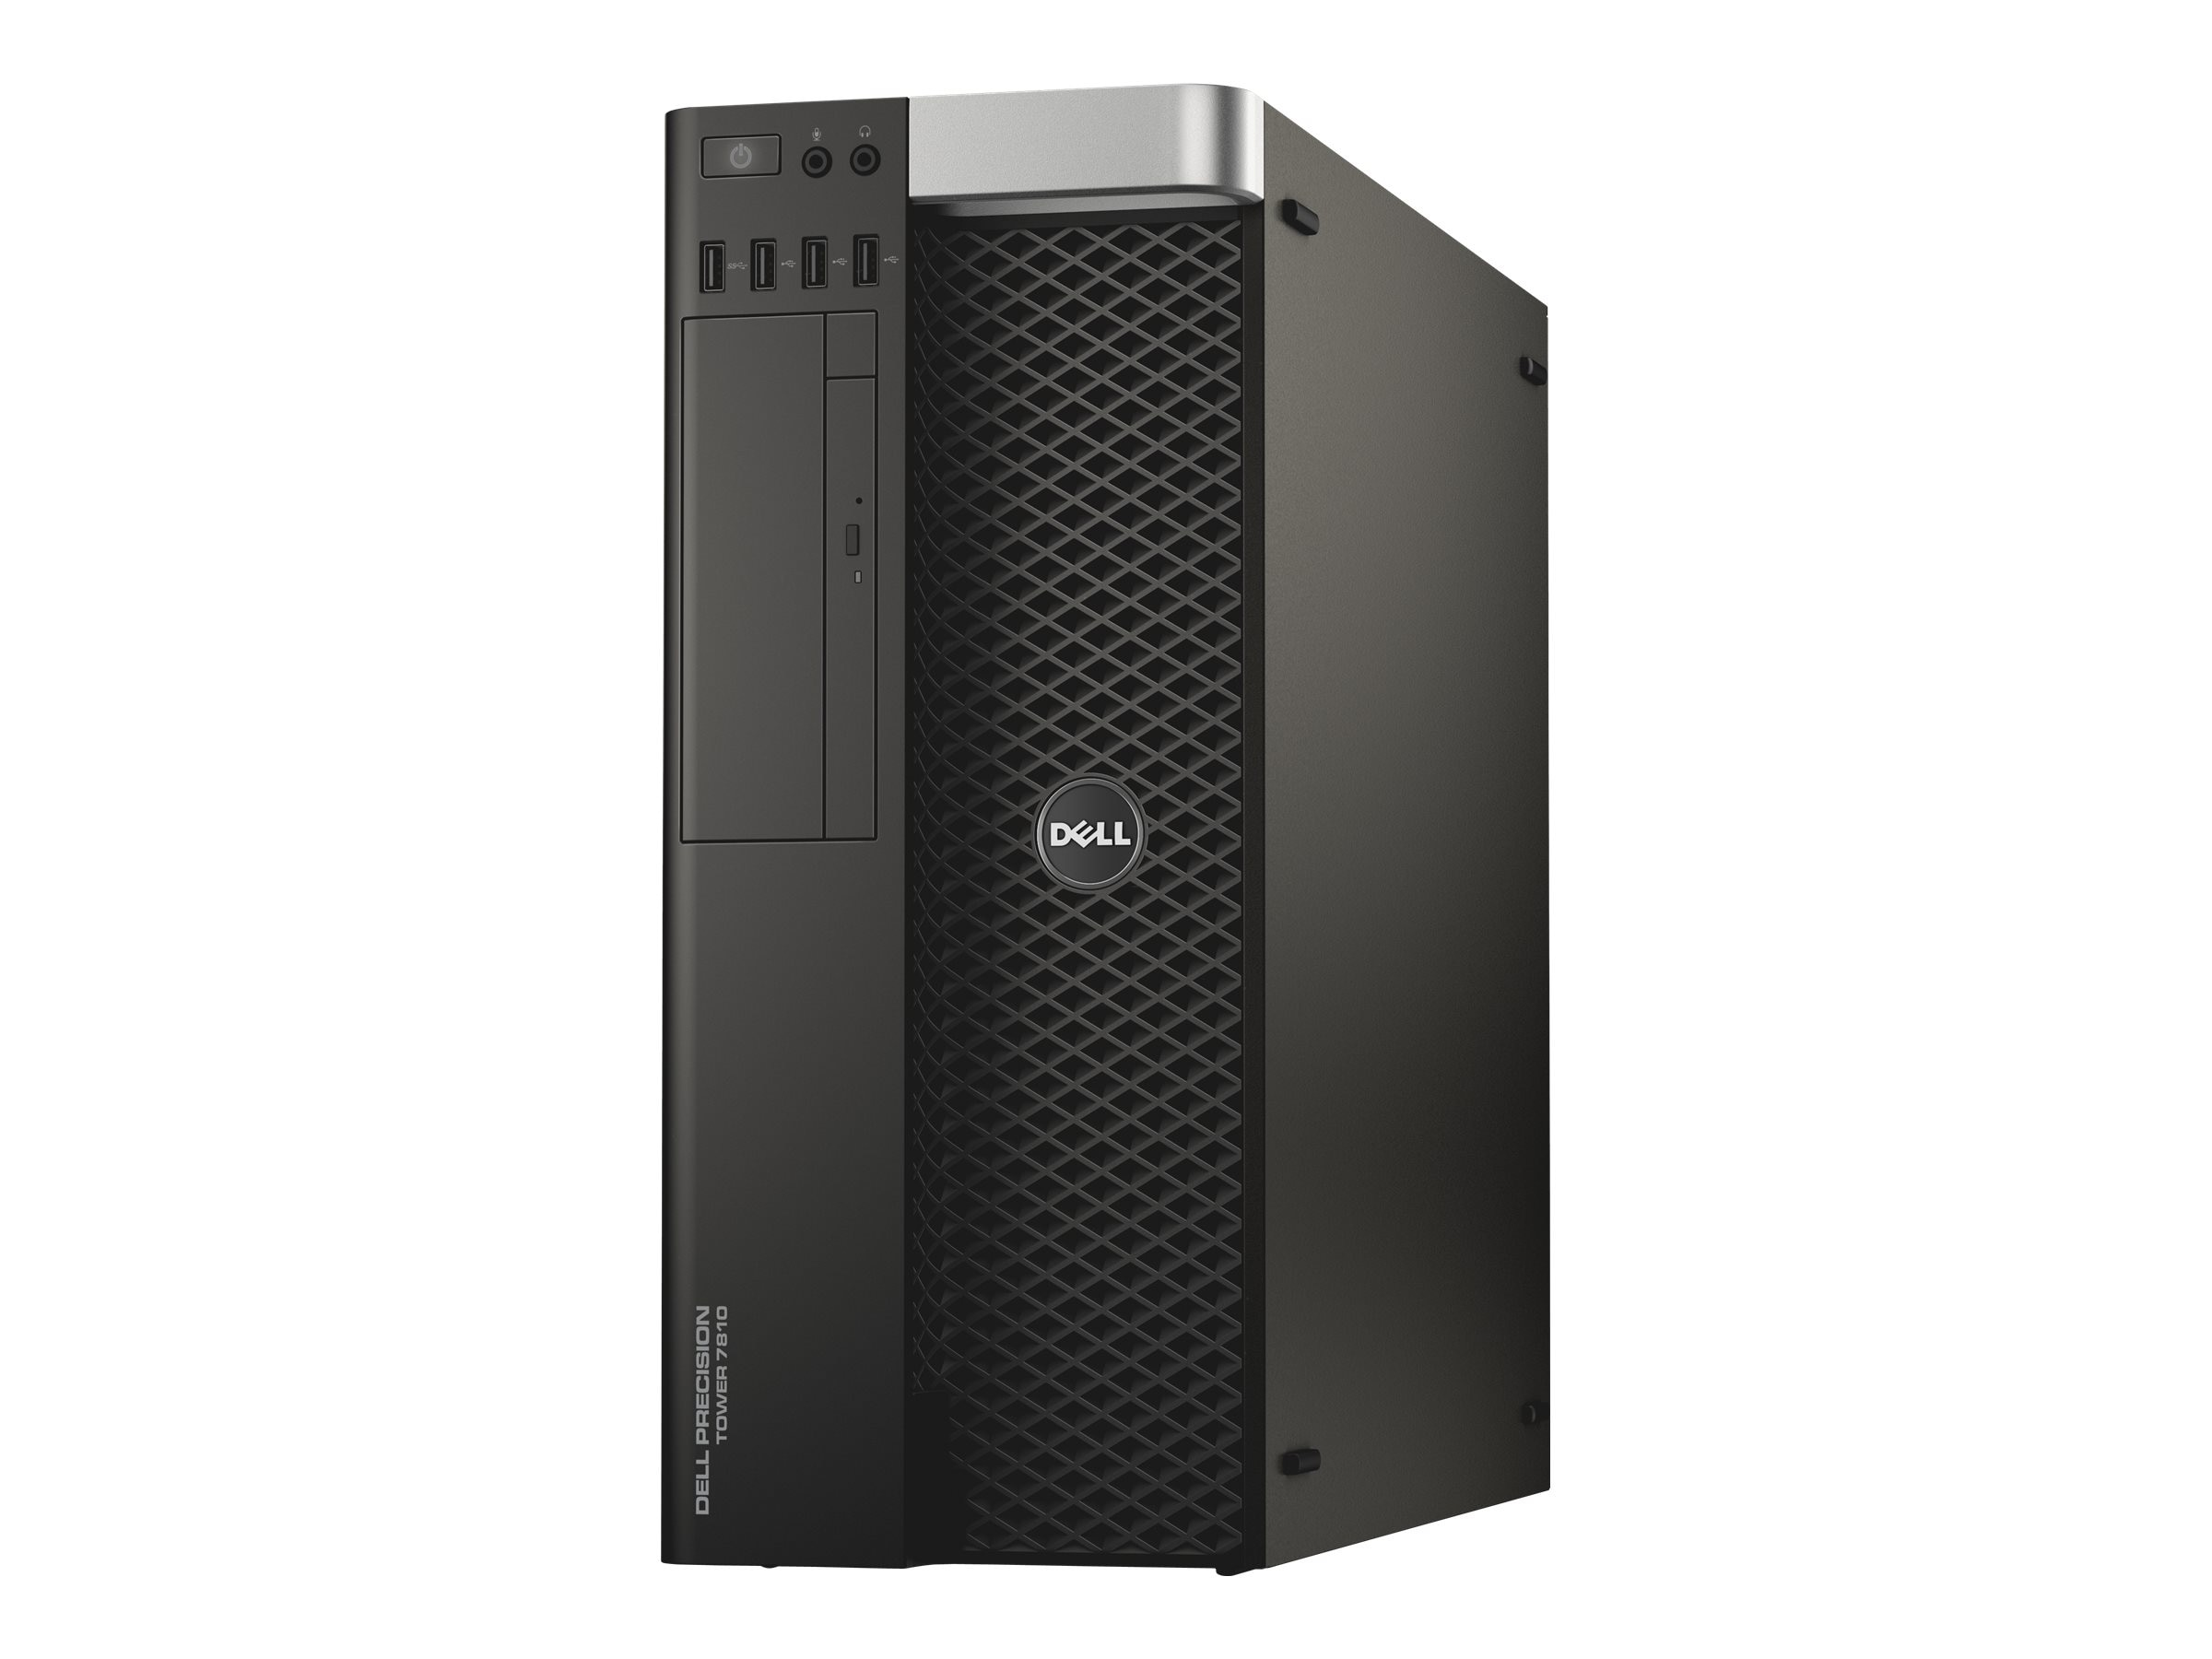 Dell Precision 7810 2.4GHz Xeon Microsoft Windows 7 Professional 64-bit Edition   Windows 8.1 Pro, 462-9274, 17829245, Workstations